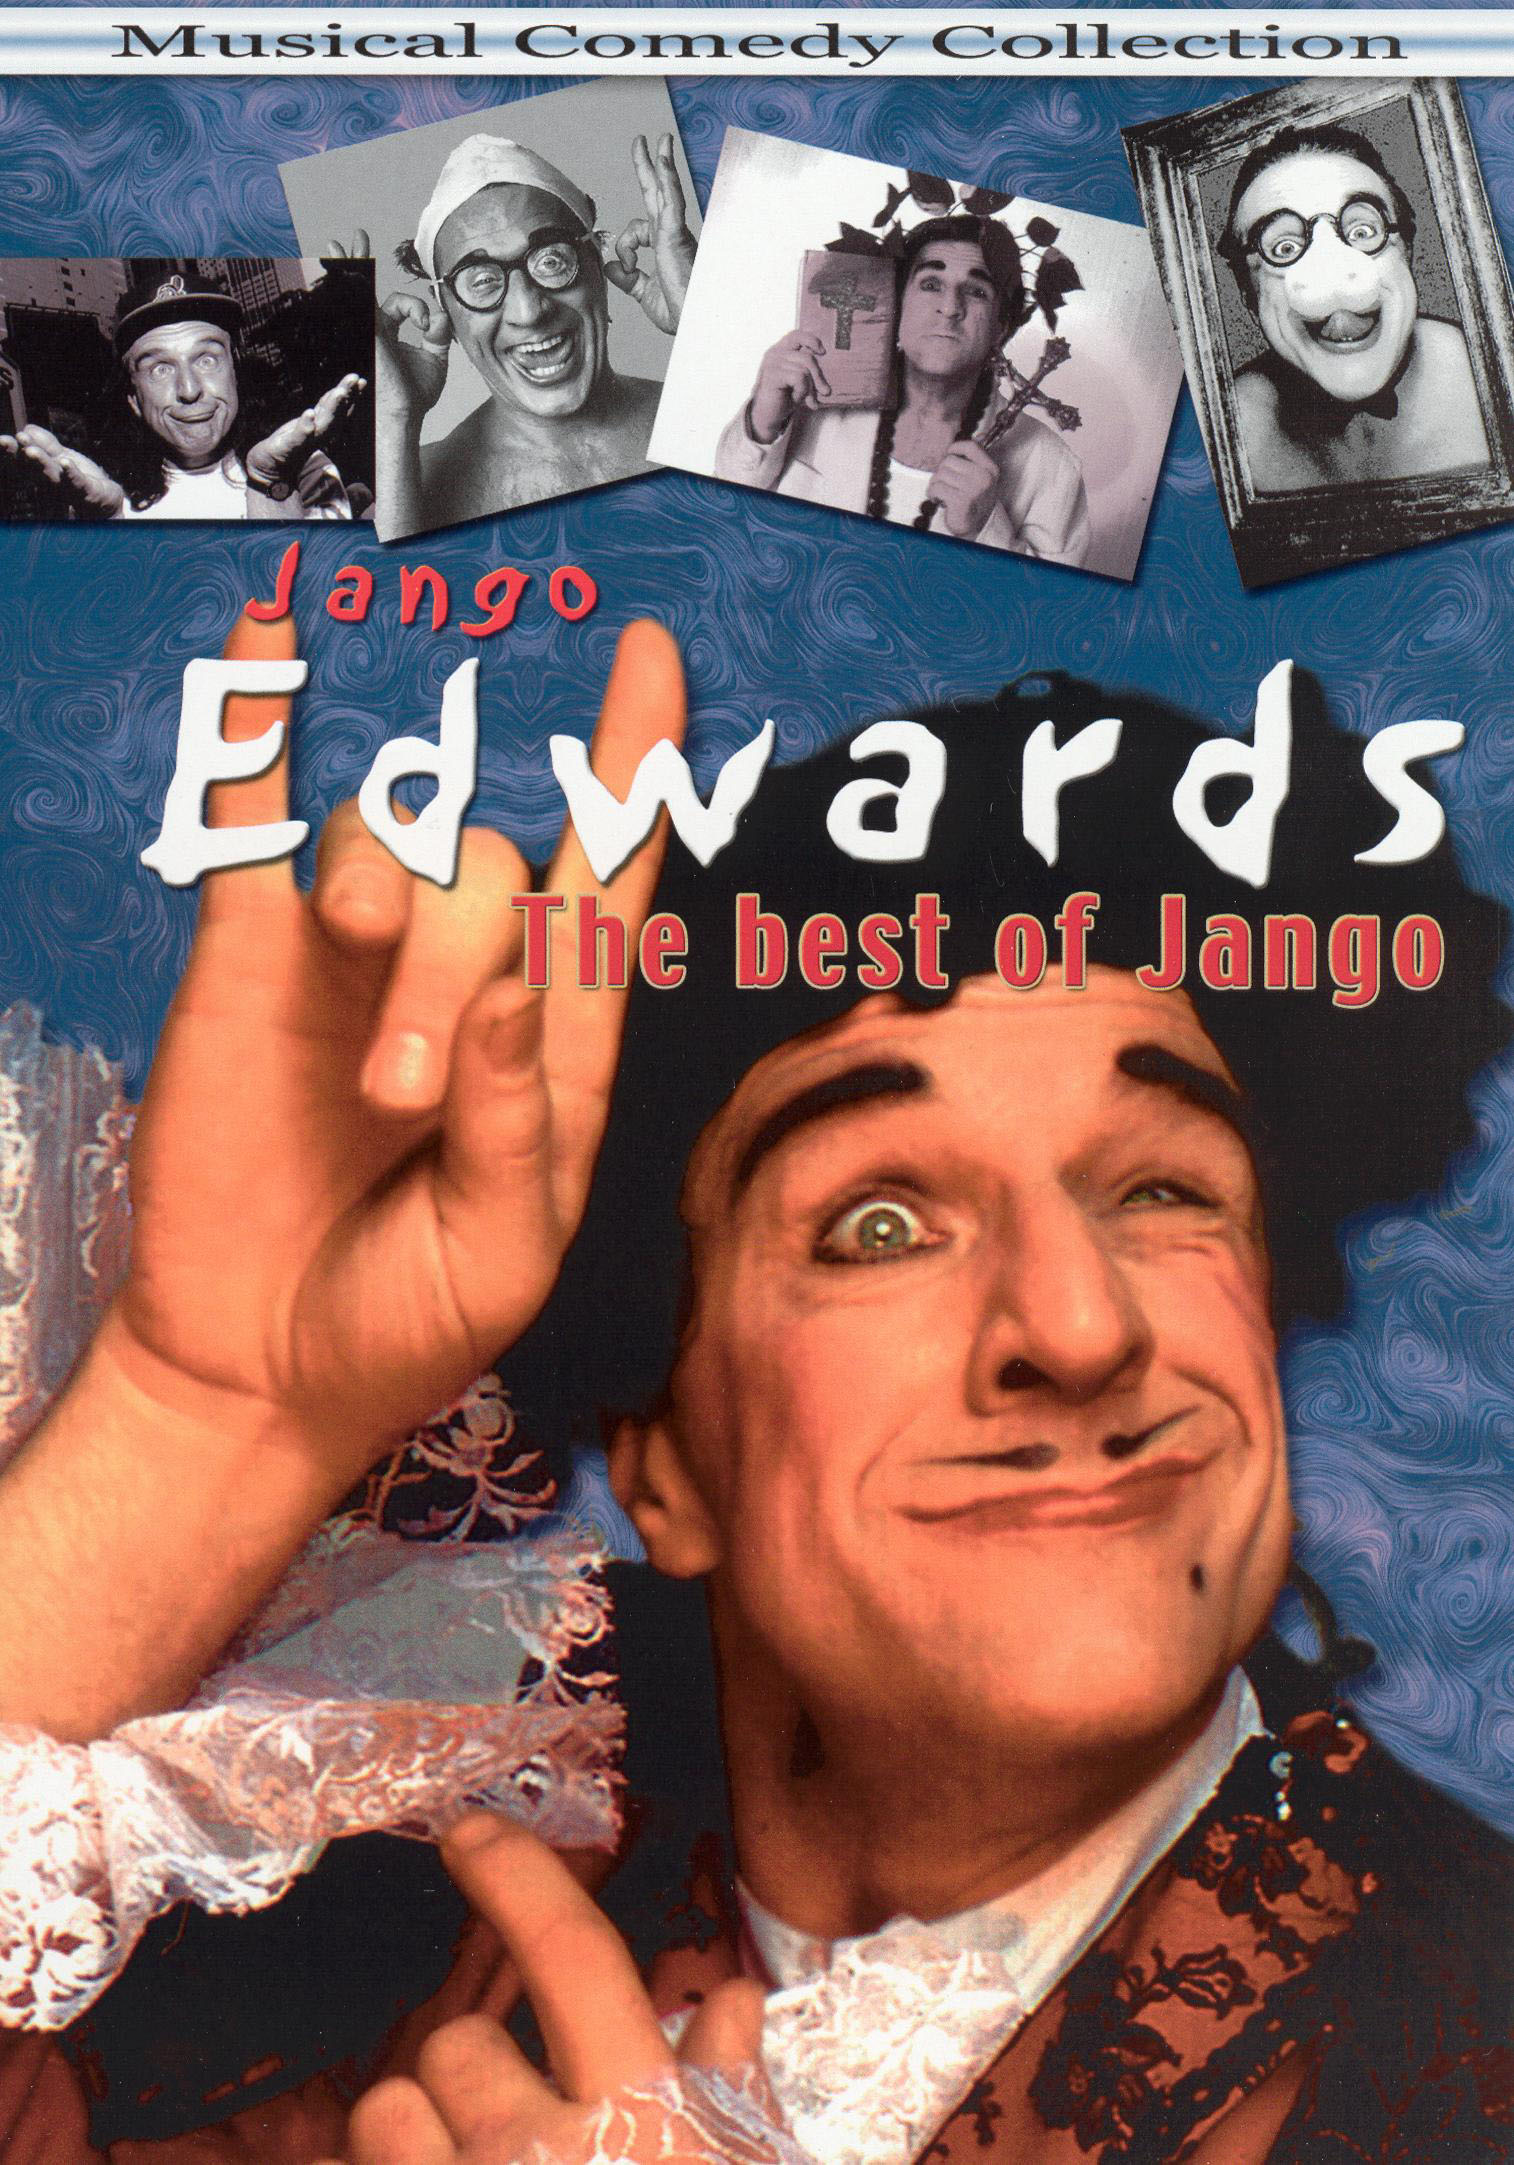 Jango Edwards: The Best of Jango